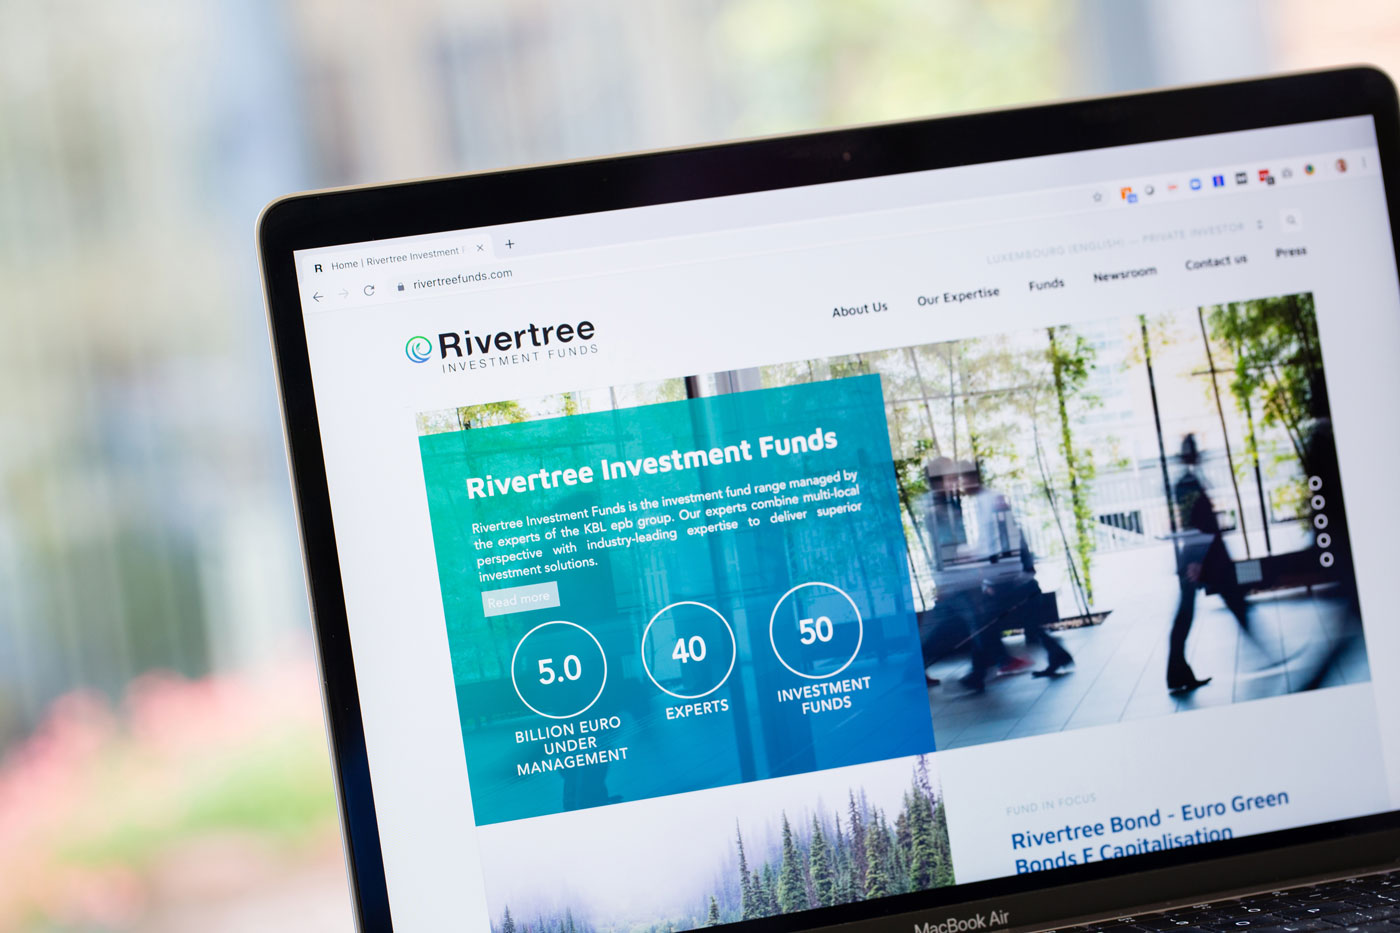 Rivertree funds